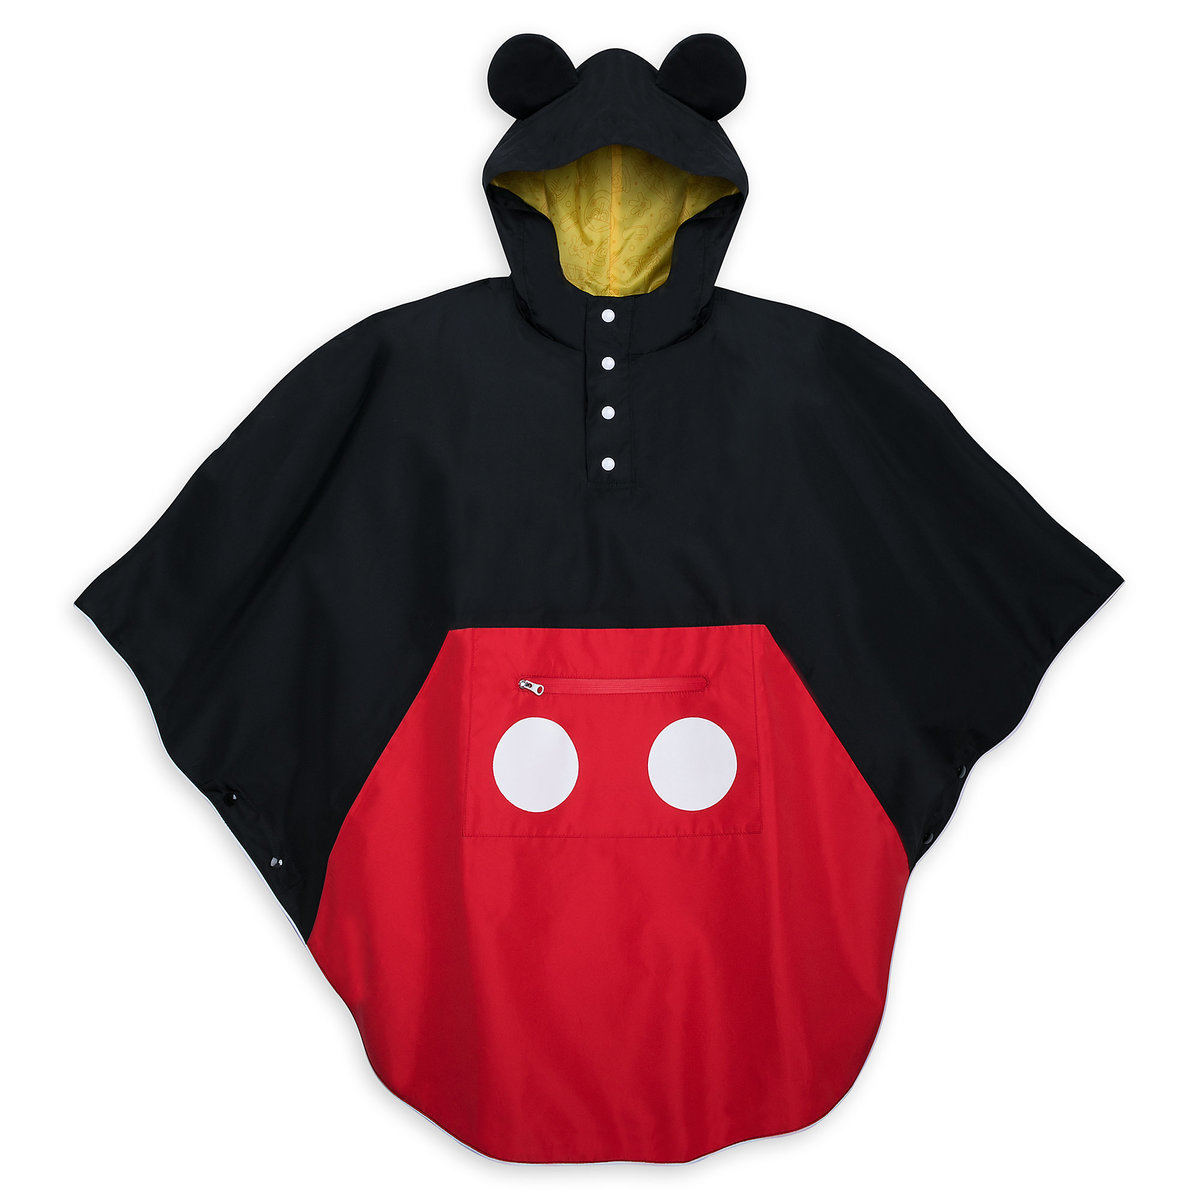 105d62c4d892 Product Image of Mickey Mouse Rain Poncho for Adults # 1